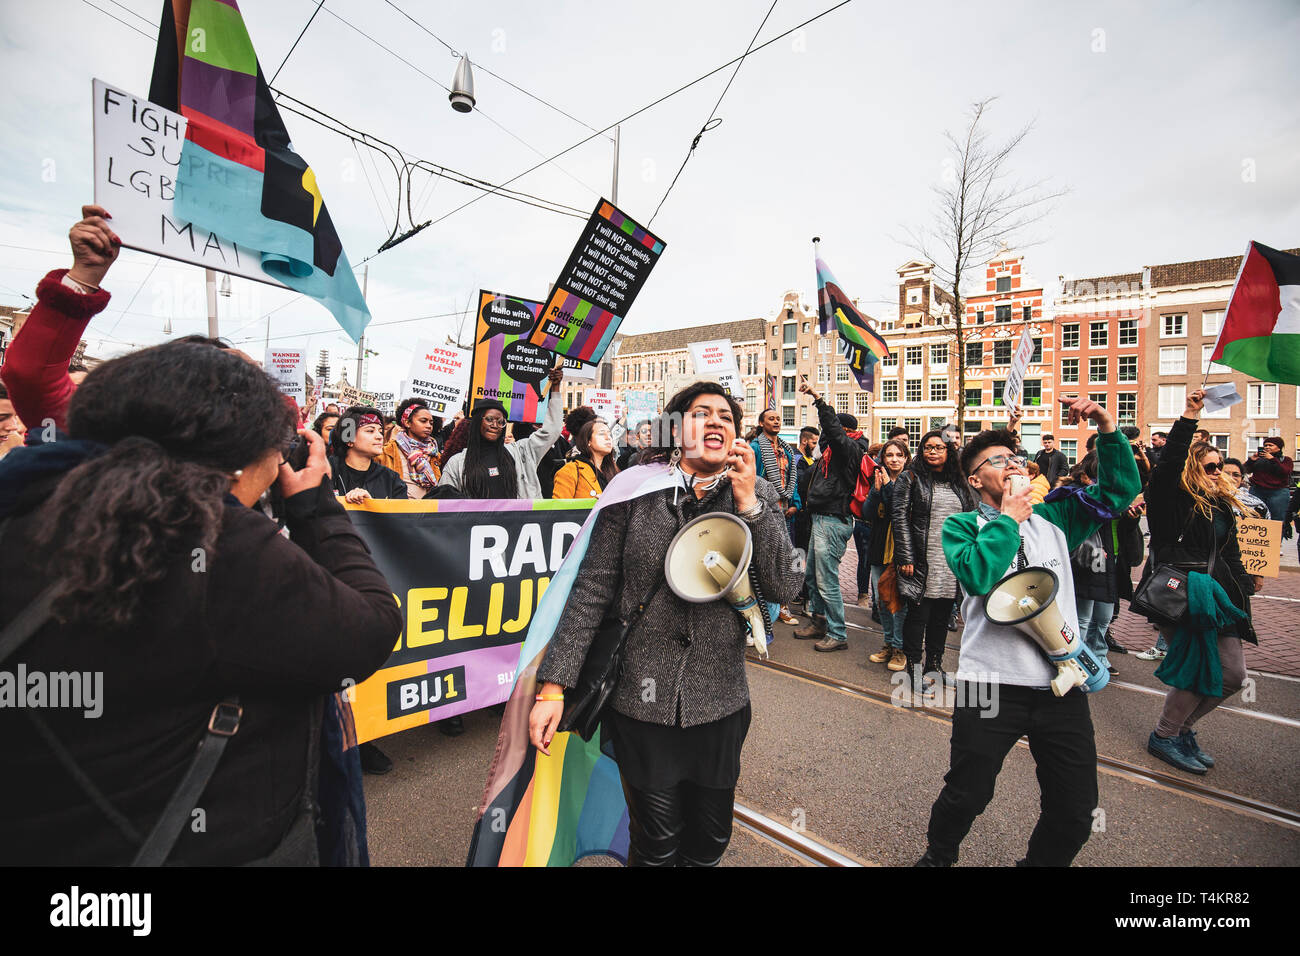 Amsterdam, Holland, 23/03/2019: People demonstrating during an anti racist procession in the city centre of Amsterdam - Stock Image